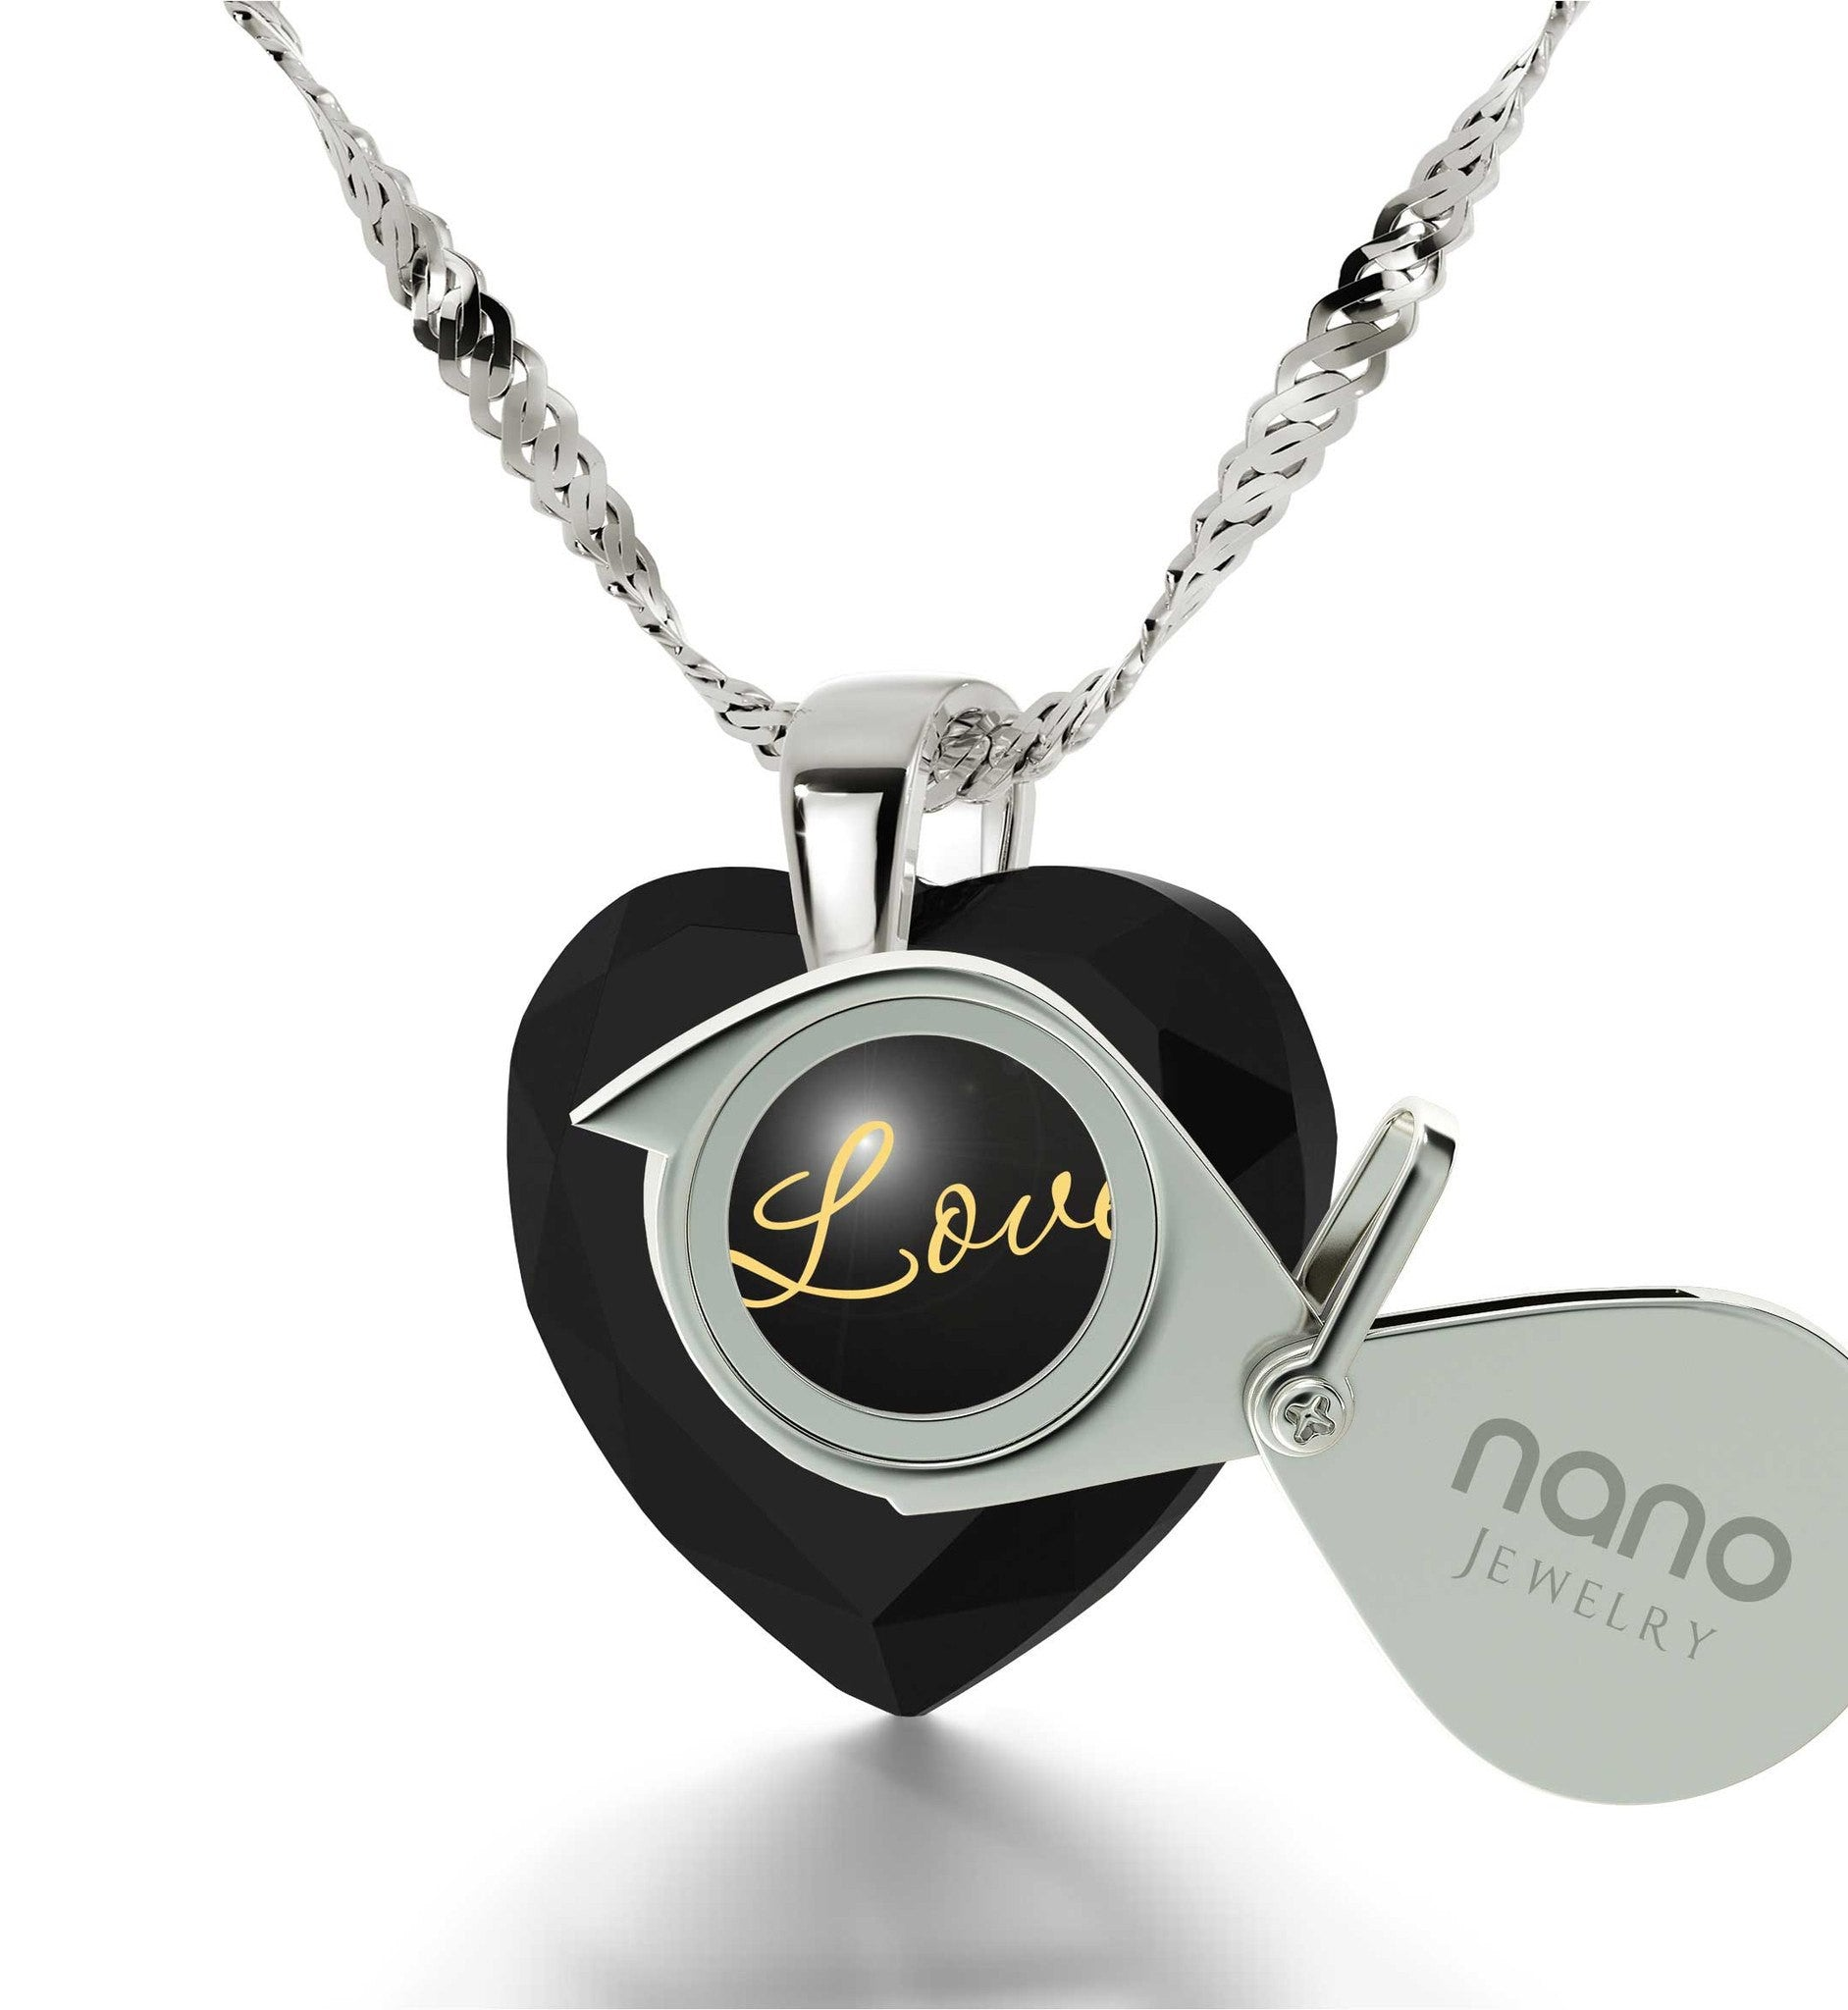 Top Gifts for Wife, I Love You White Gold Necklace, Birthday Present Ideas for Girlfriend, by Nano Jewelry